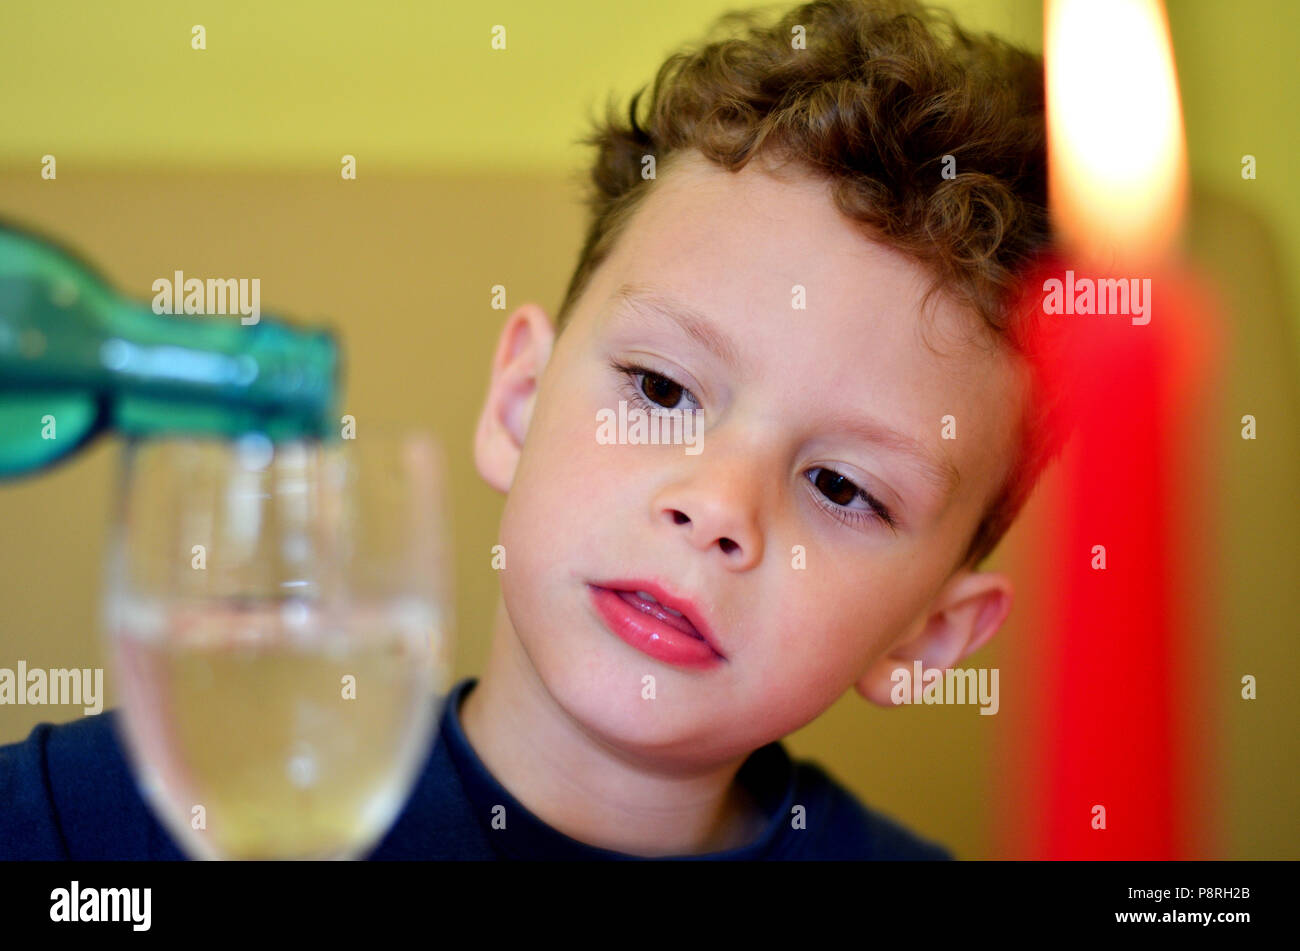 A small child in the restaurant serves himself - Stock Image